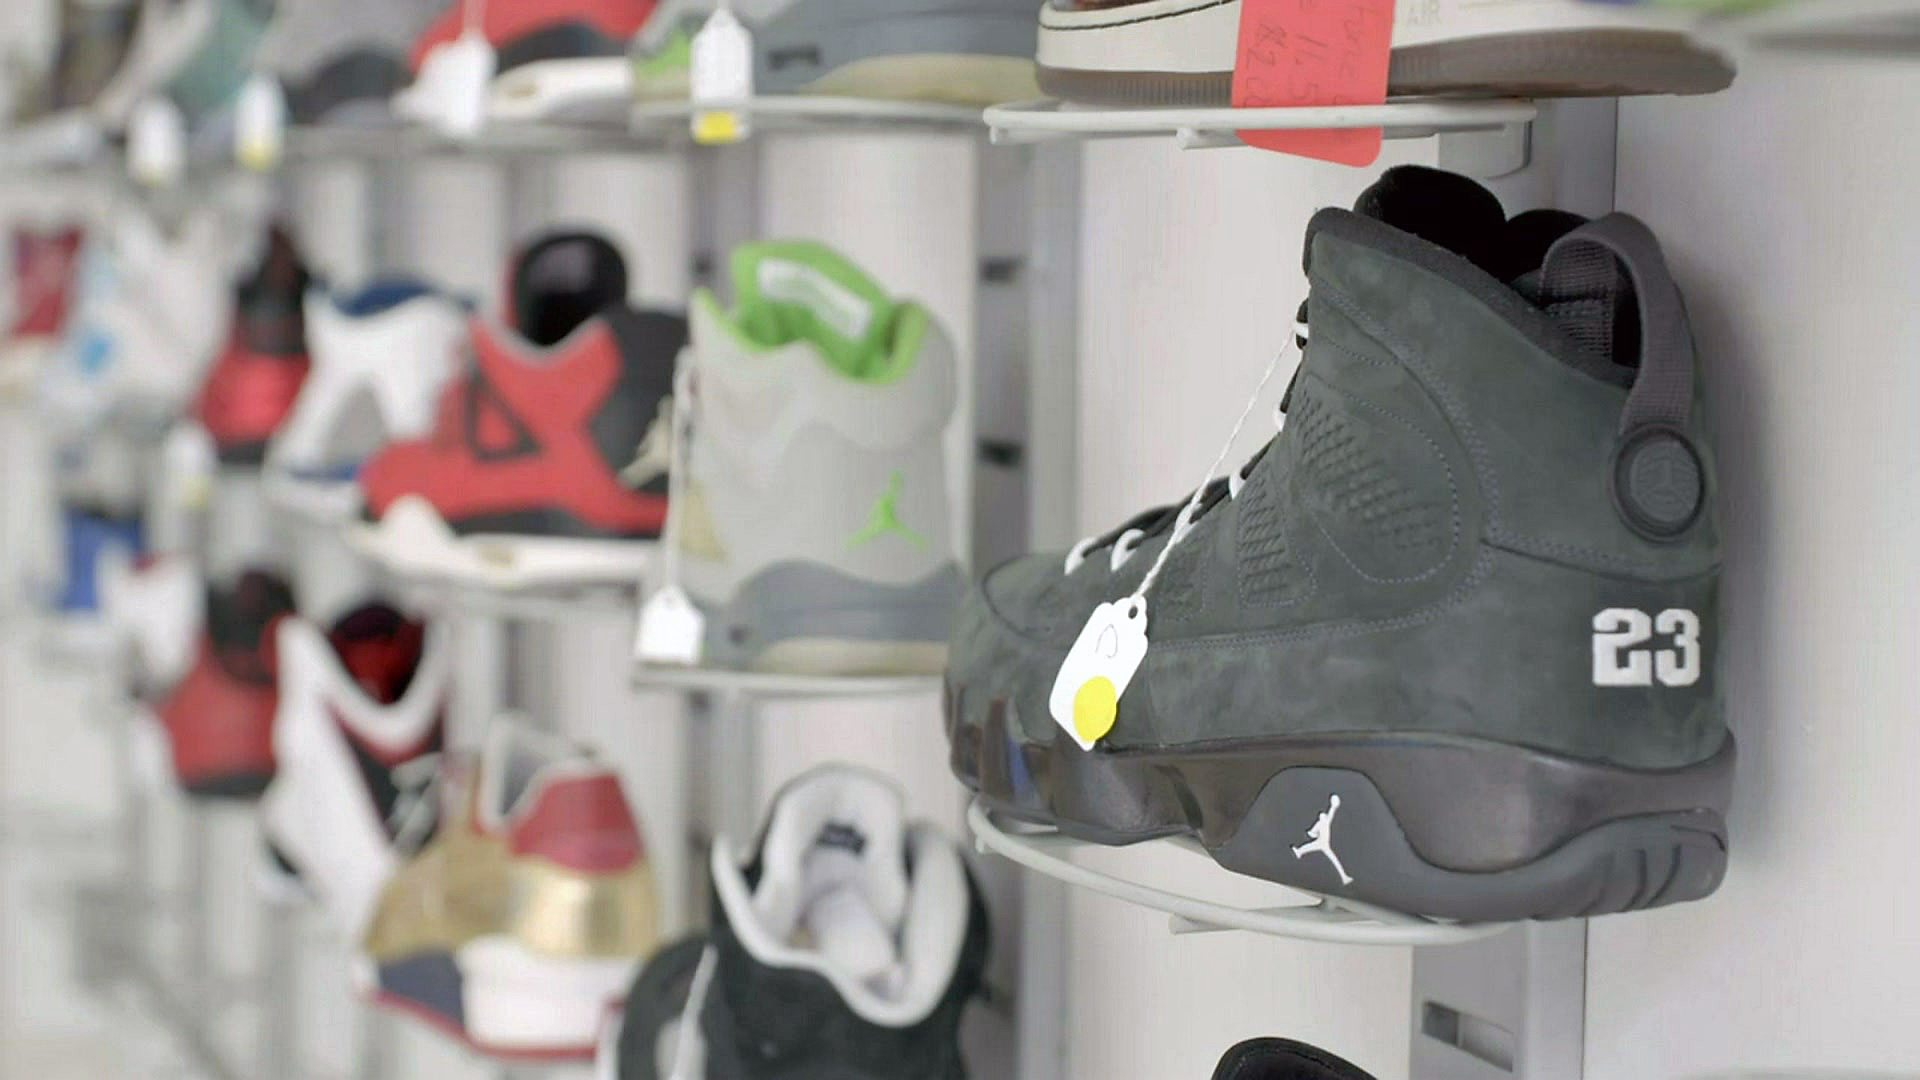 Where rare second-hand trainers can